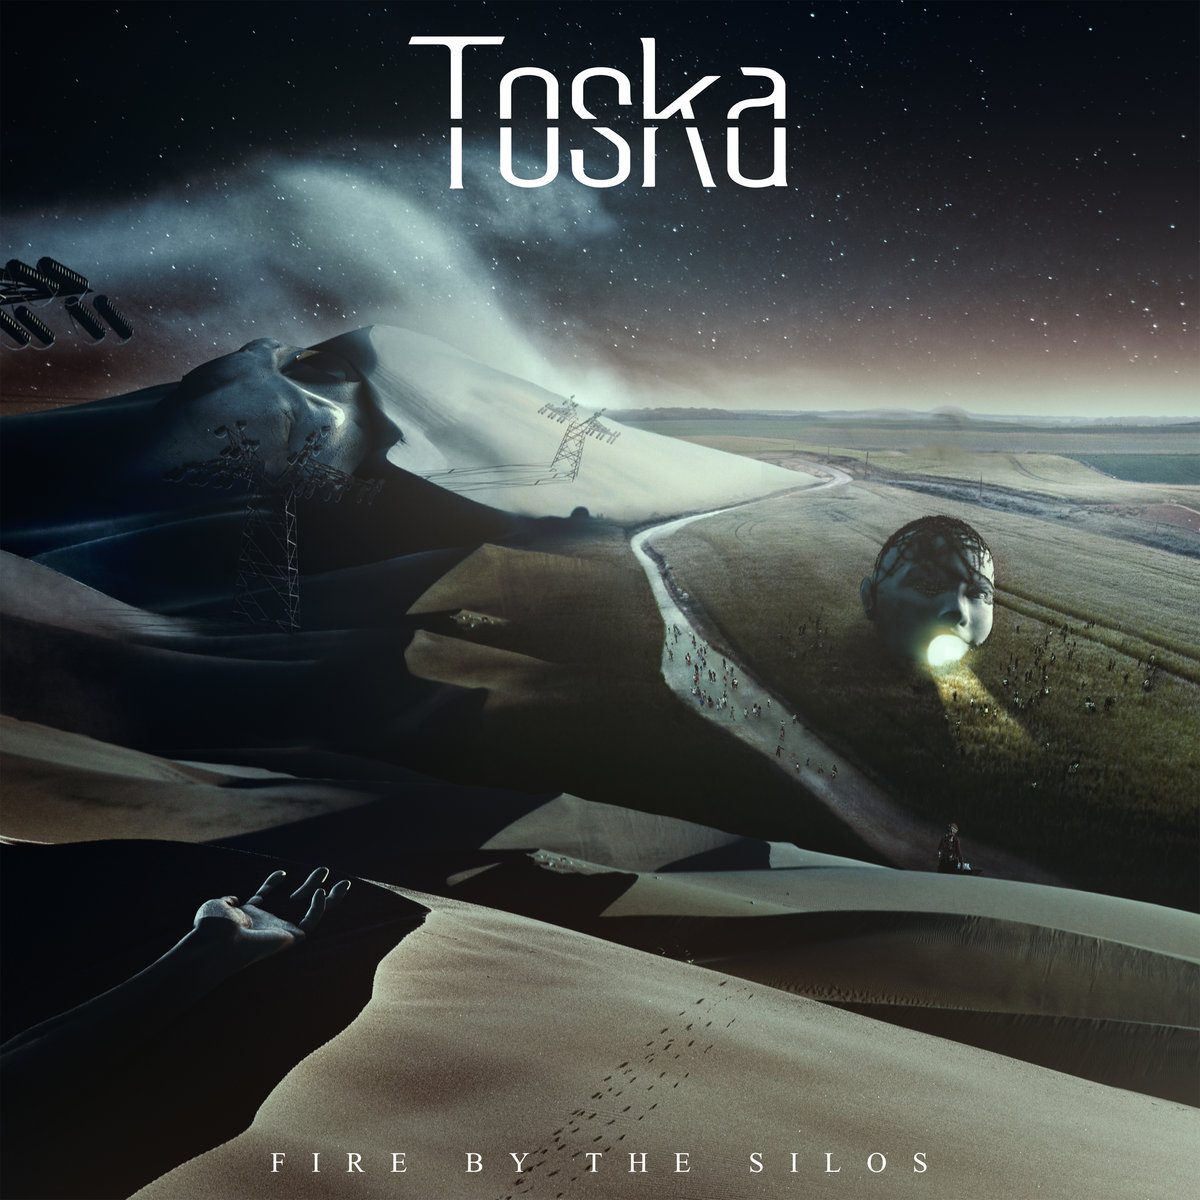 https://officialtoska.bandcamp.com/album/fire-by-the-silos